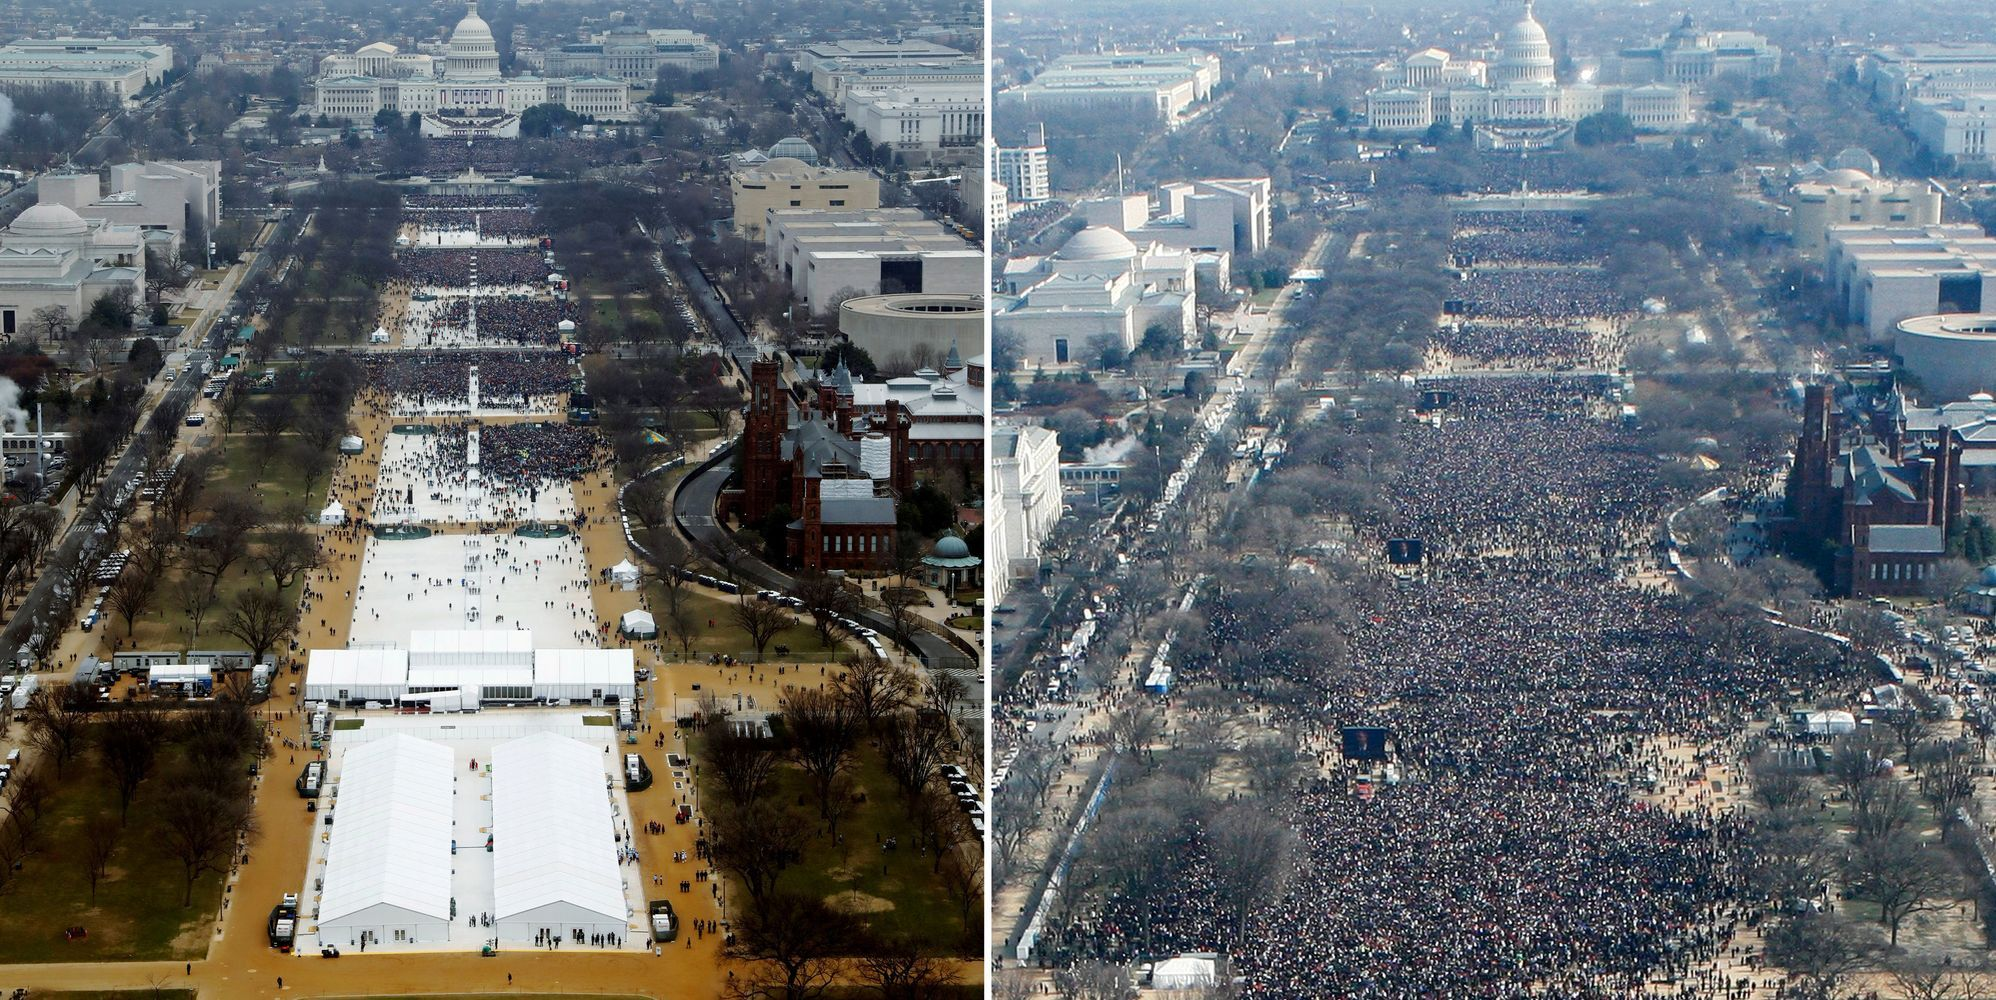 Americans Aren't Buying Trump's False Claims About Inauguration Crowd Size